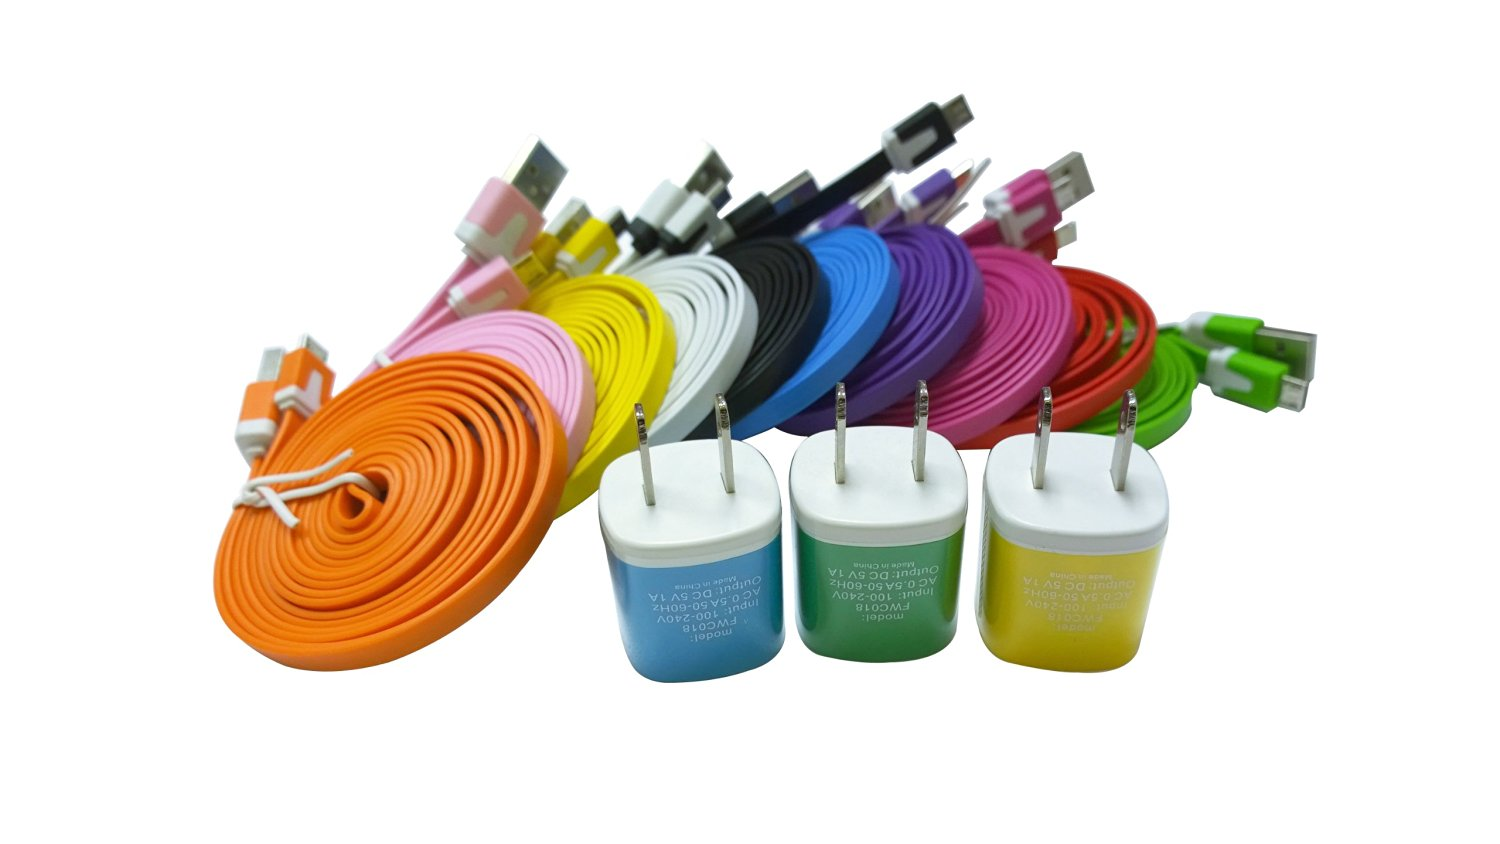 SUNYEE (10) Qty Rainbow Colors Micro USB to USB 2.0 Cables Data Sync Charger Flat Noodle Cable Cords for Samsung Galaxy S2 S3 S4 I9500 HTC Blackberry + (3) 2-Tone Sunyee USB AC Wall Charger (Mixed Colors (6 Ft. Cables))